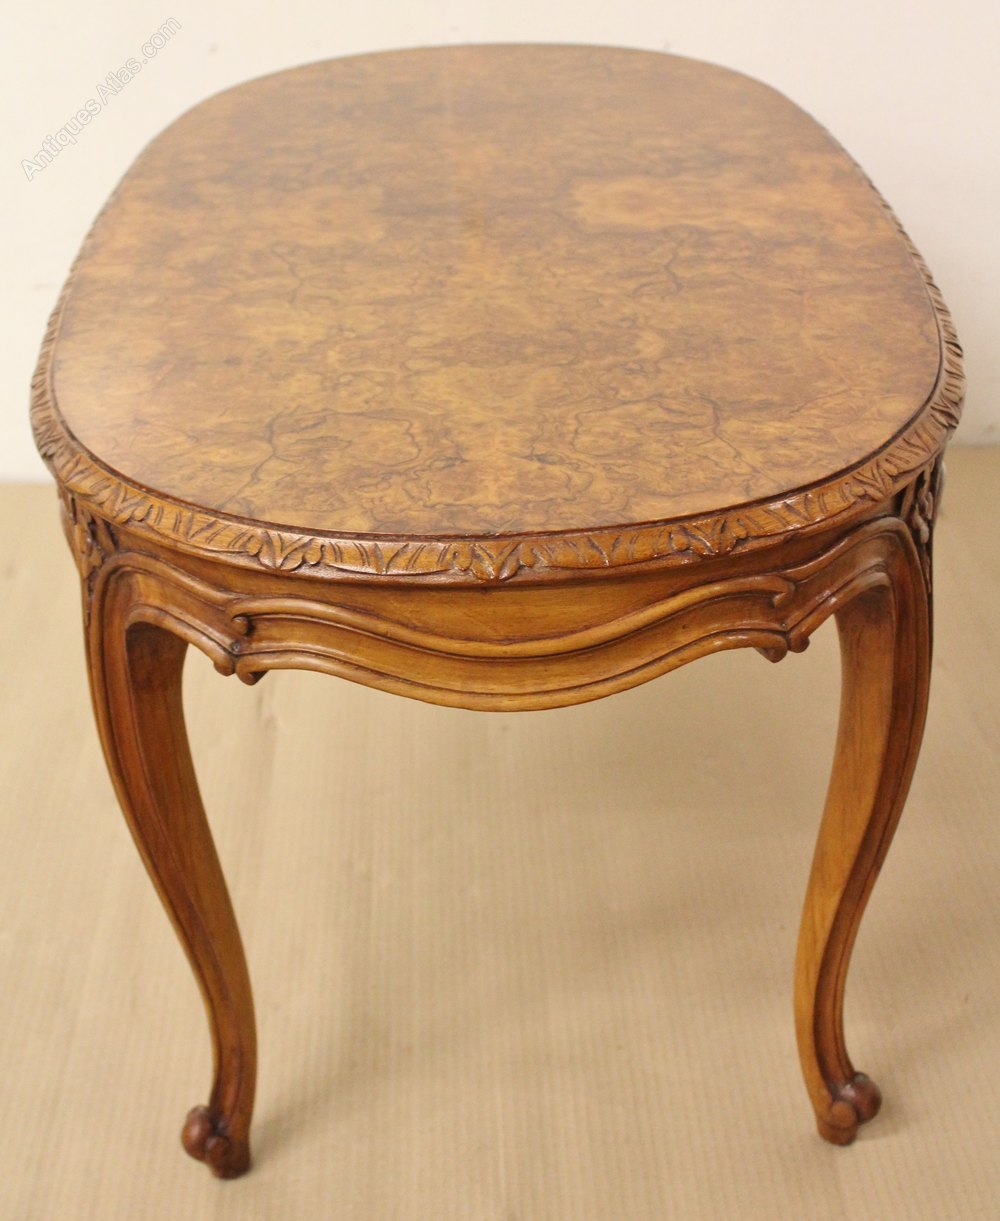 Walnut Oval Coffee Table Uk: Oval Burr Walnut Coffee Table